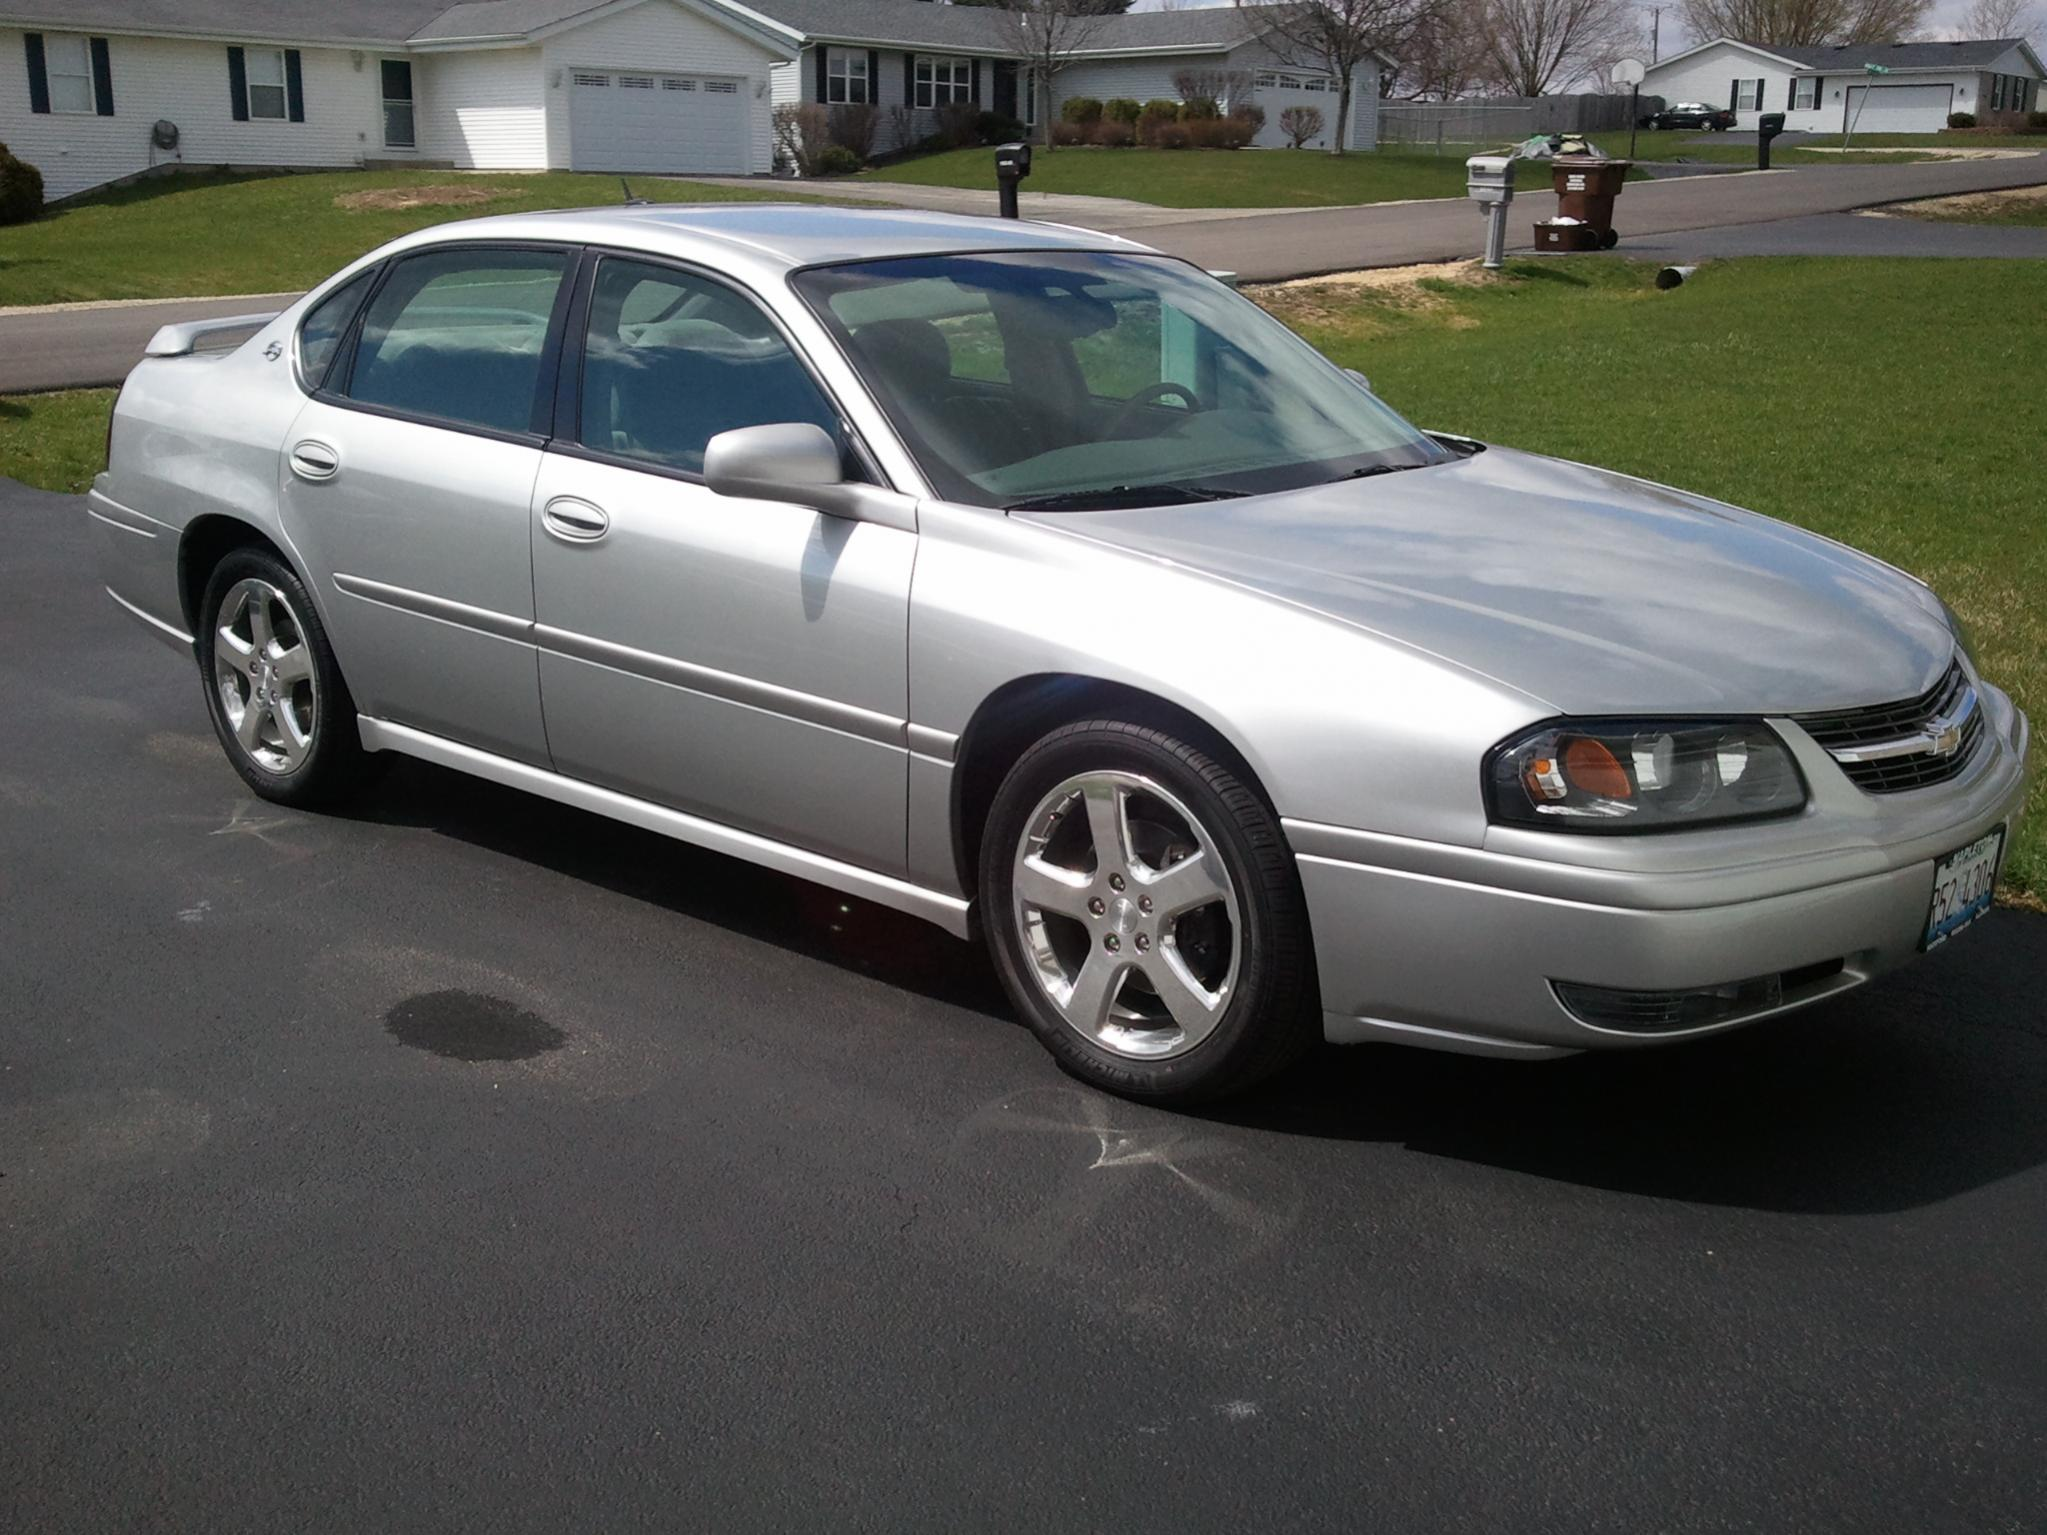 Used Car Rims >> pics of 18 inch GXP wheels - Chevy Impala Forums